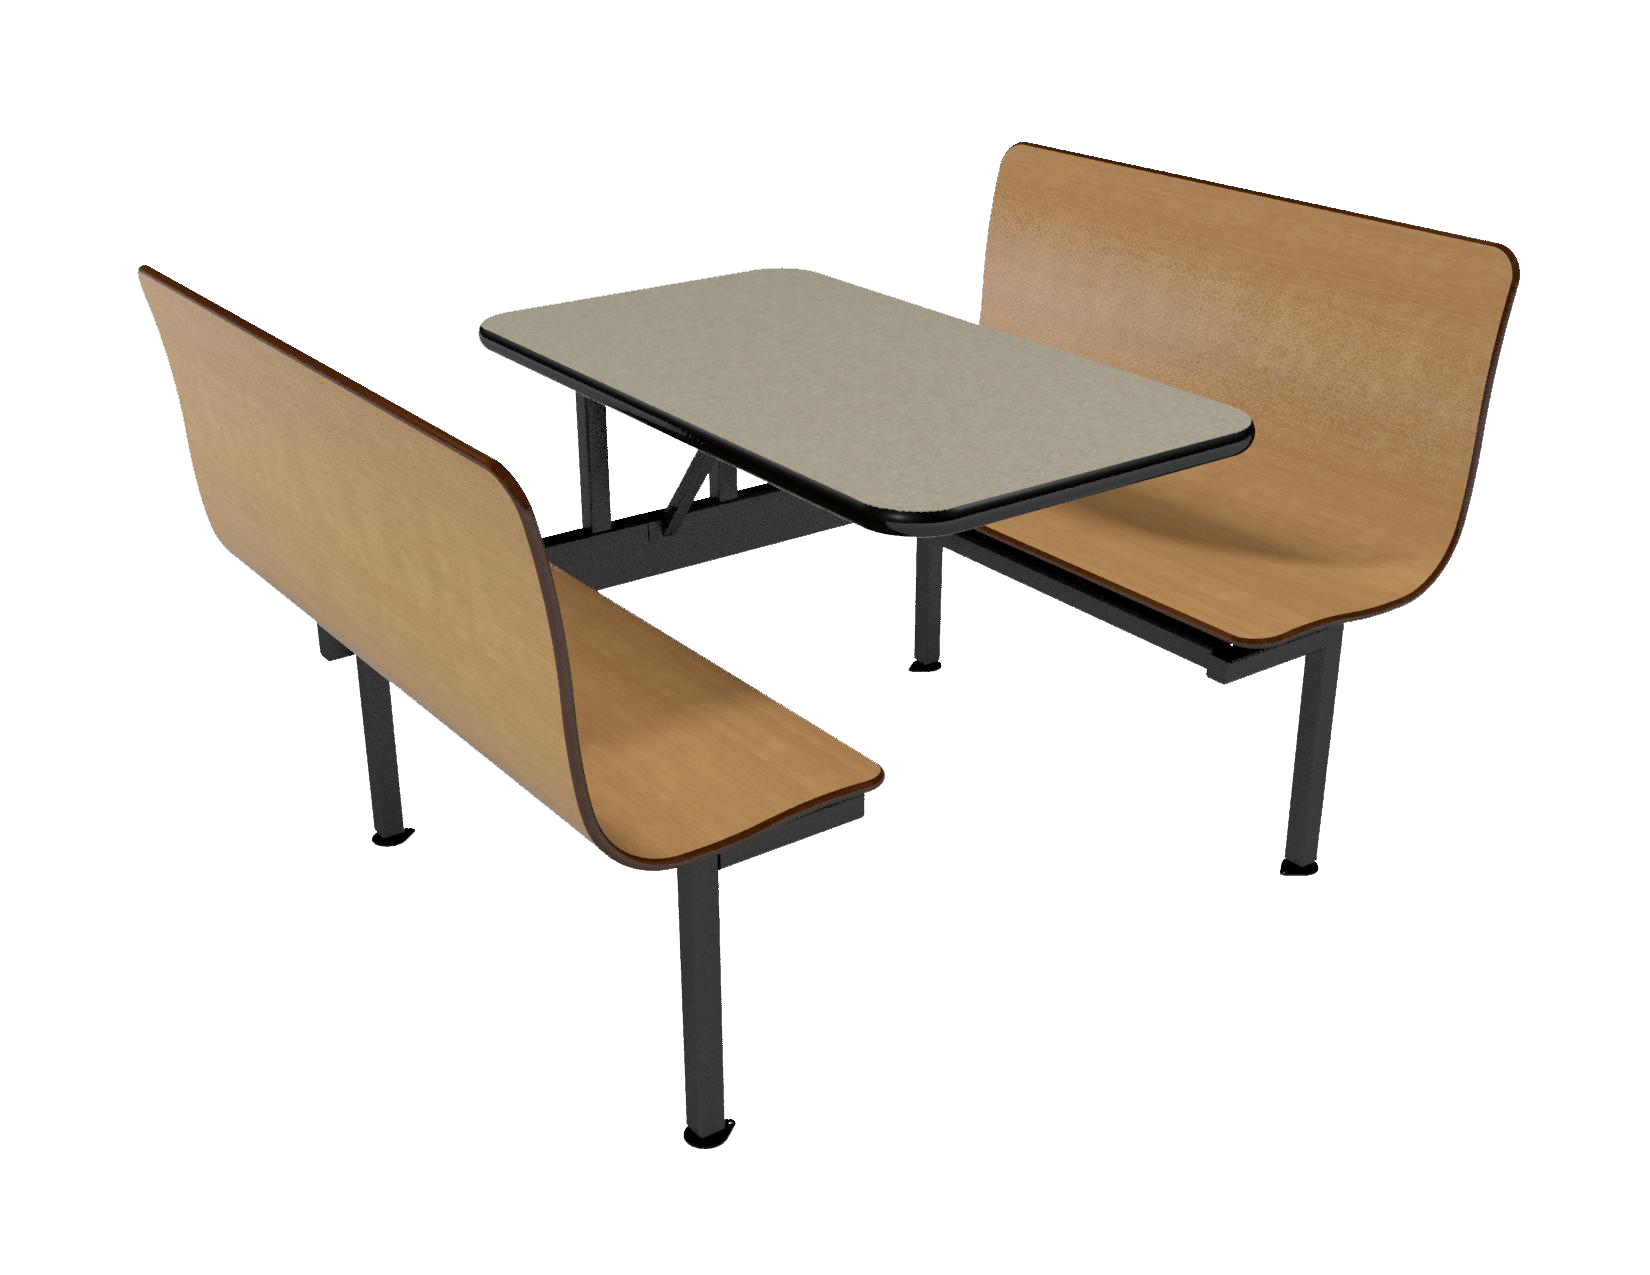 42 Wall Style Contour Booth Vinyl Edge Table